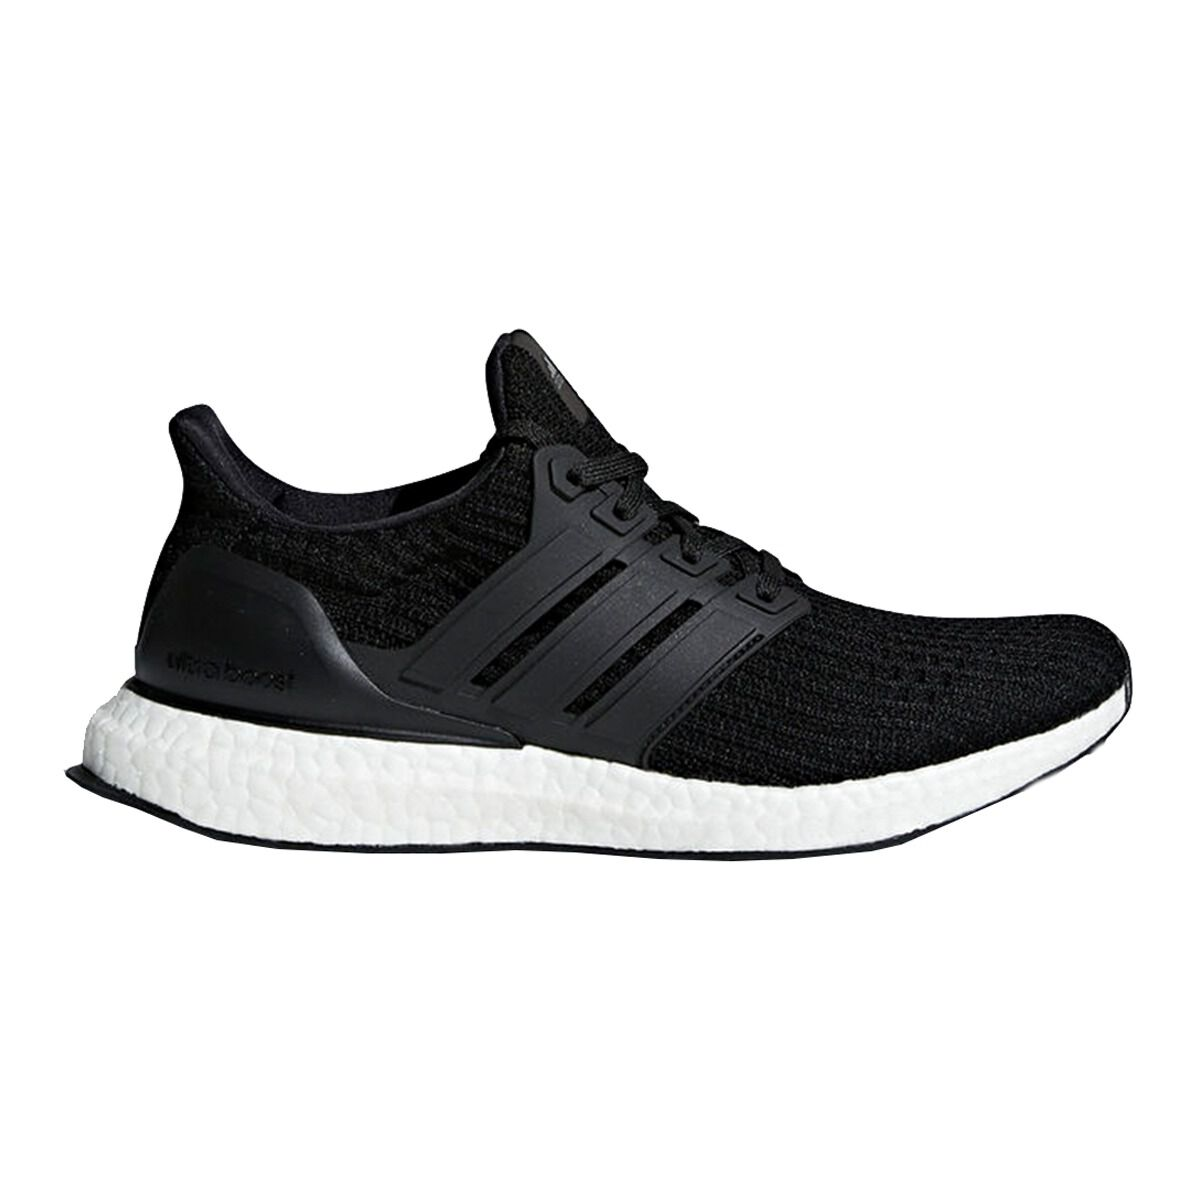 adidas Ultraboost Womens Running Shoes Black White US 6.5